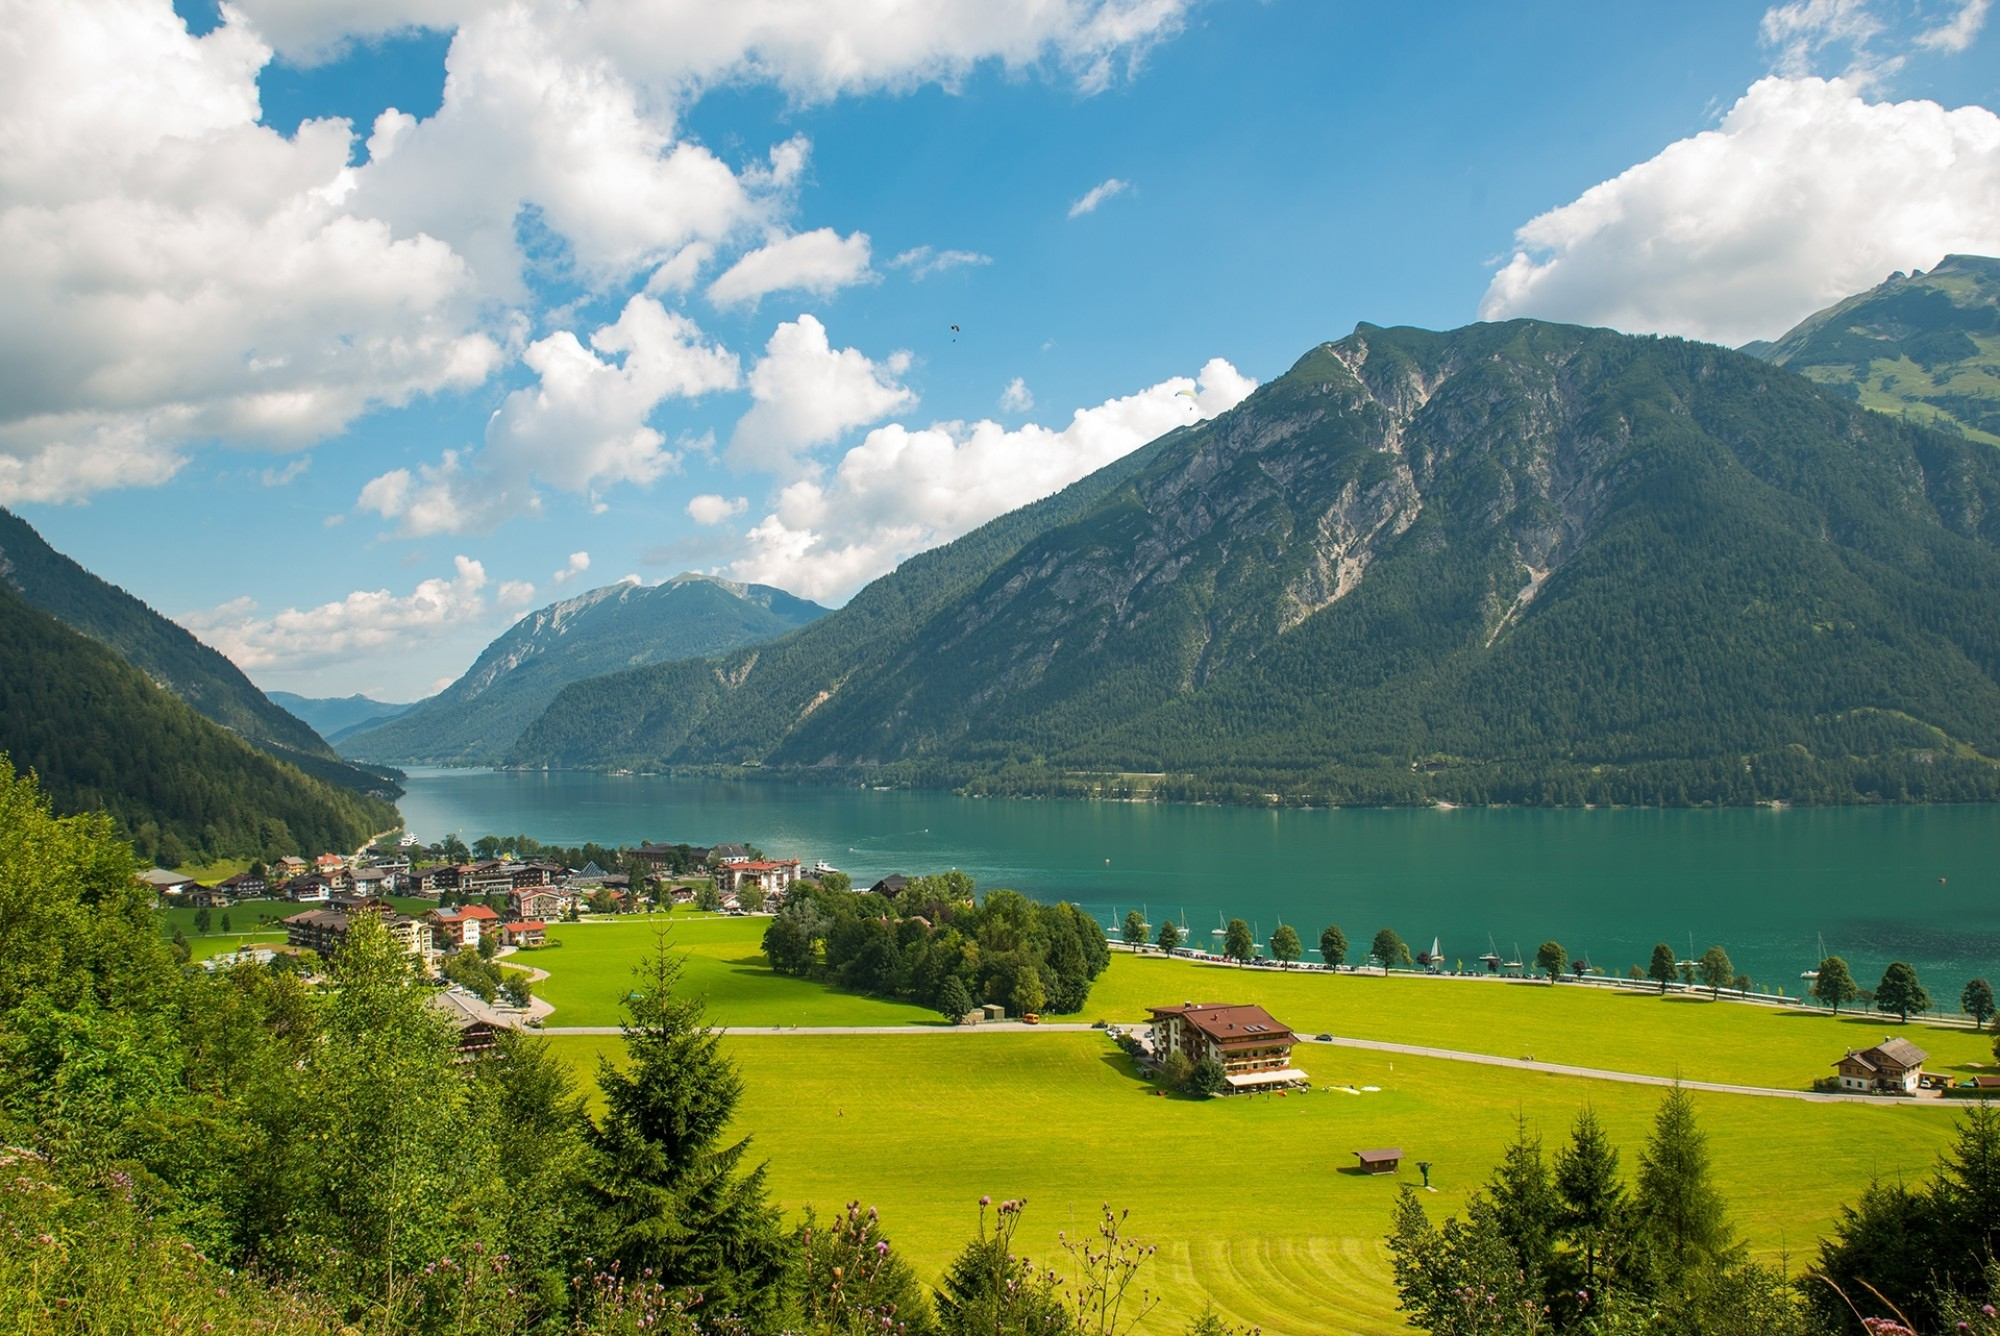 View-of-the-nice-Achensee-in-the-Tyrolean-alps